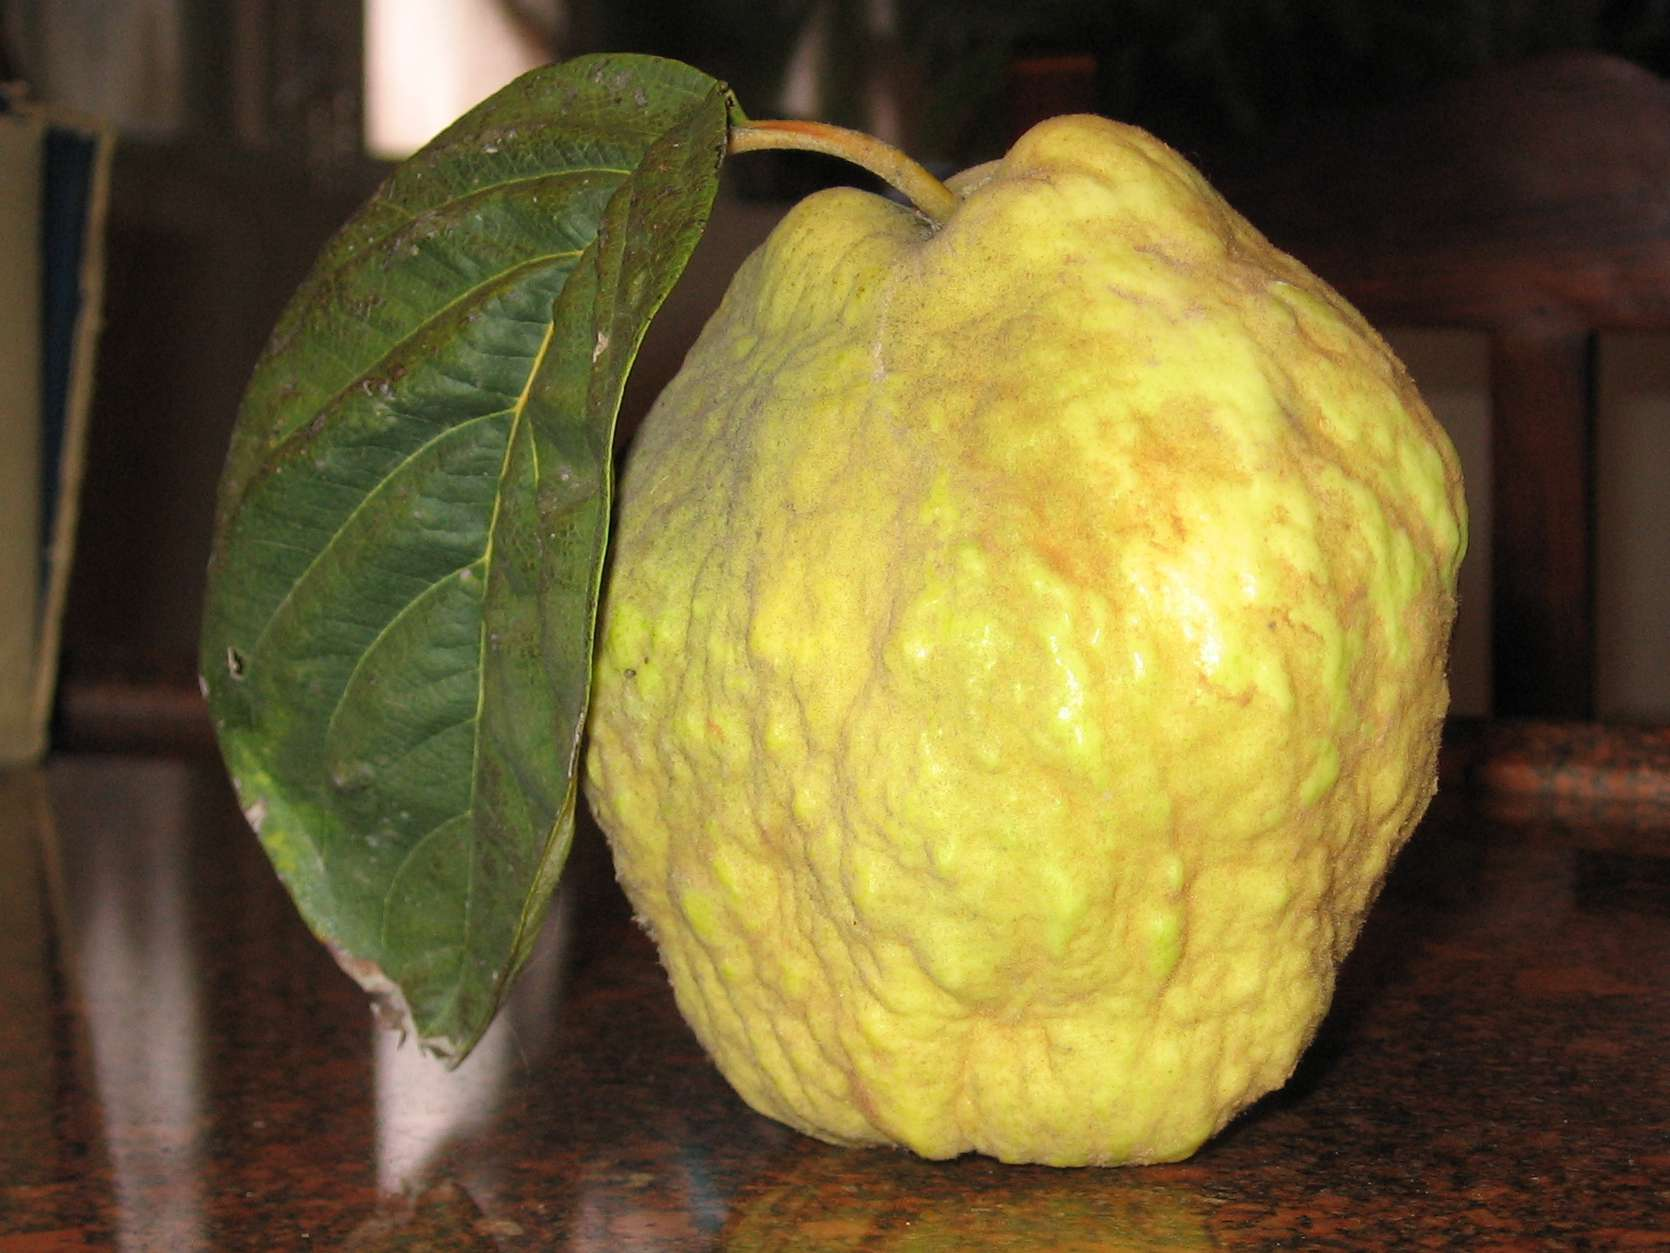 a knobby, yellow-green quince fruit